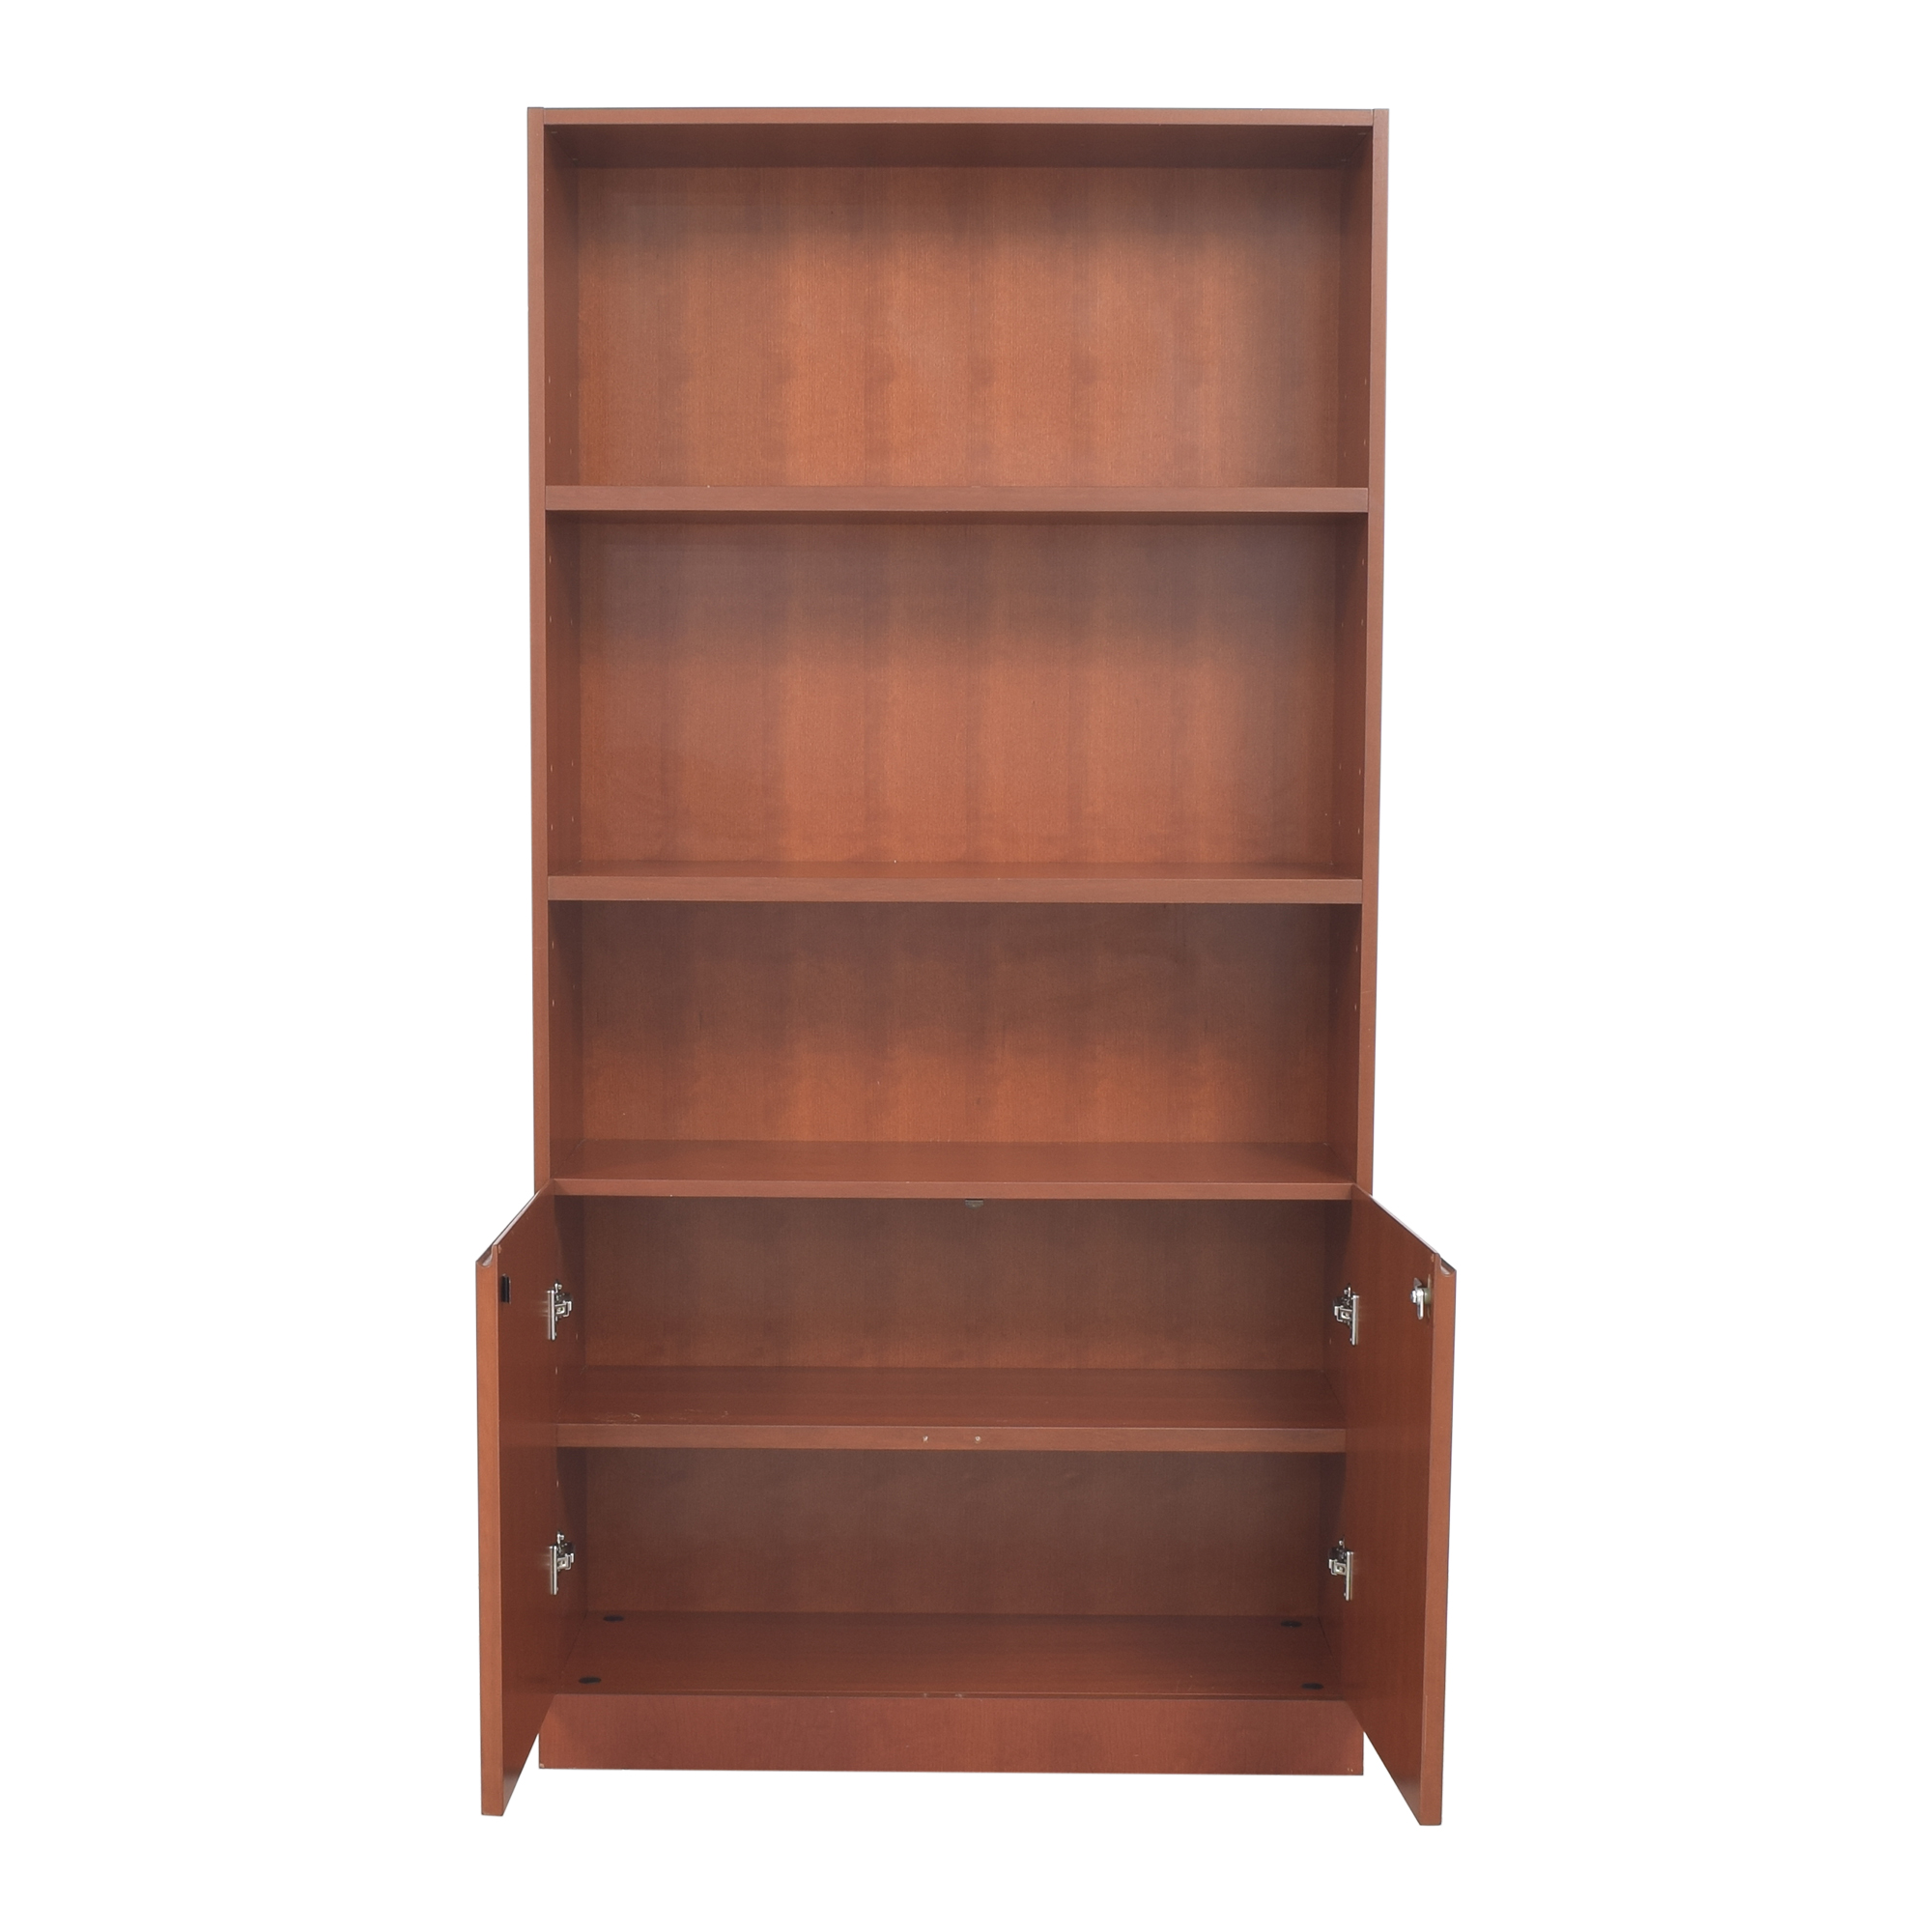 Knoll Knoll Cabinet Bookcase used